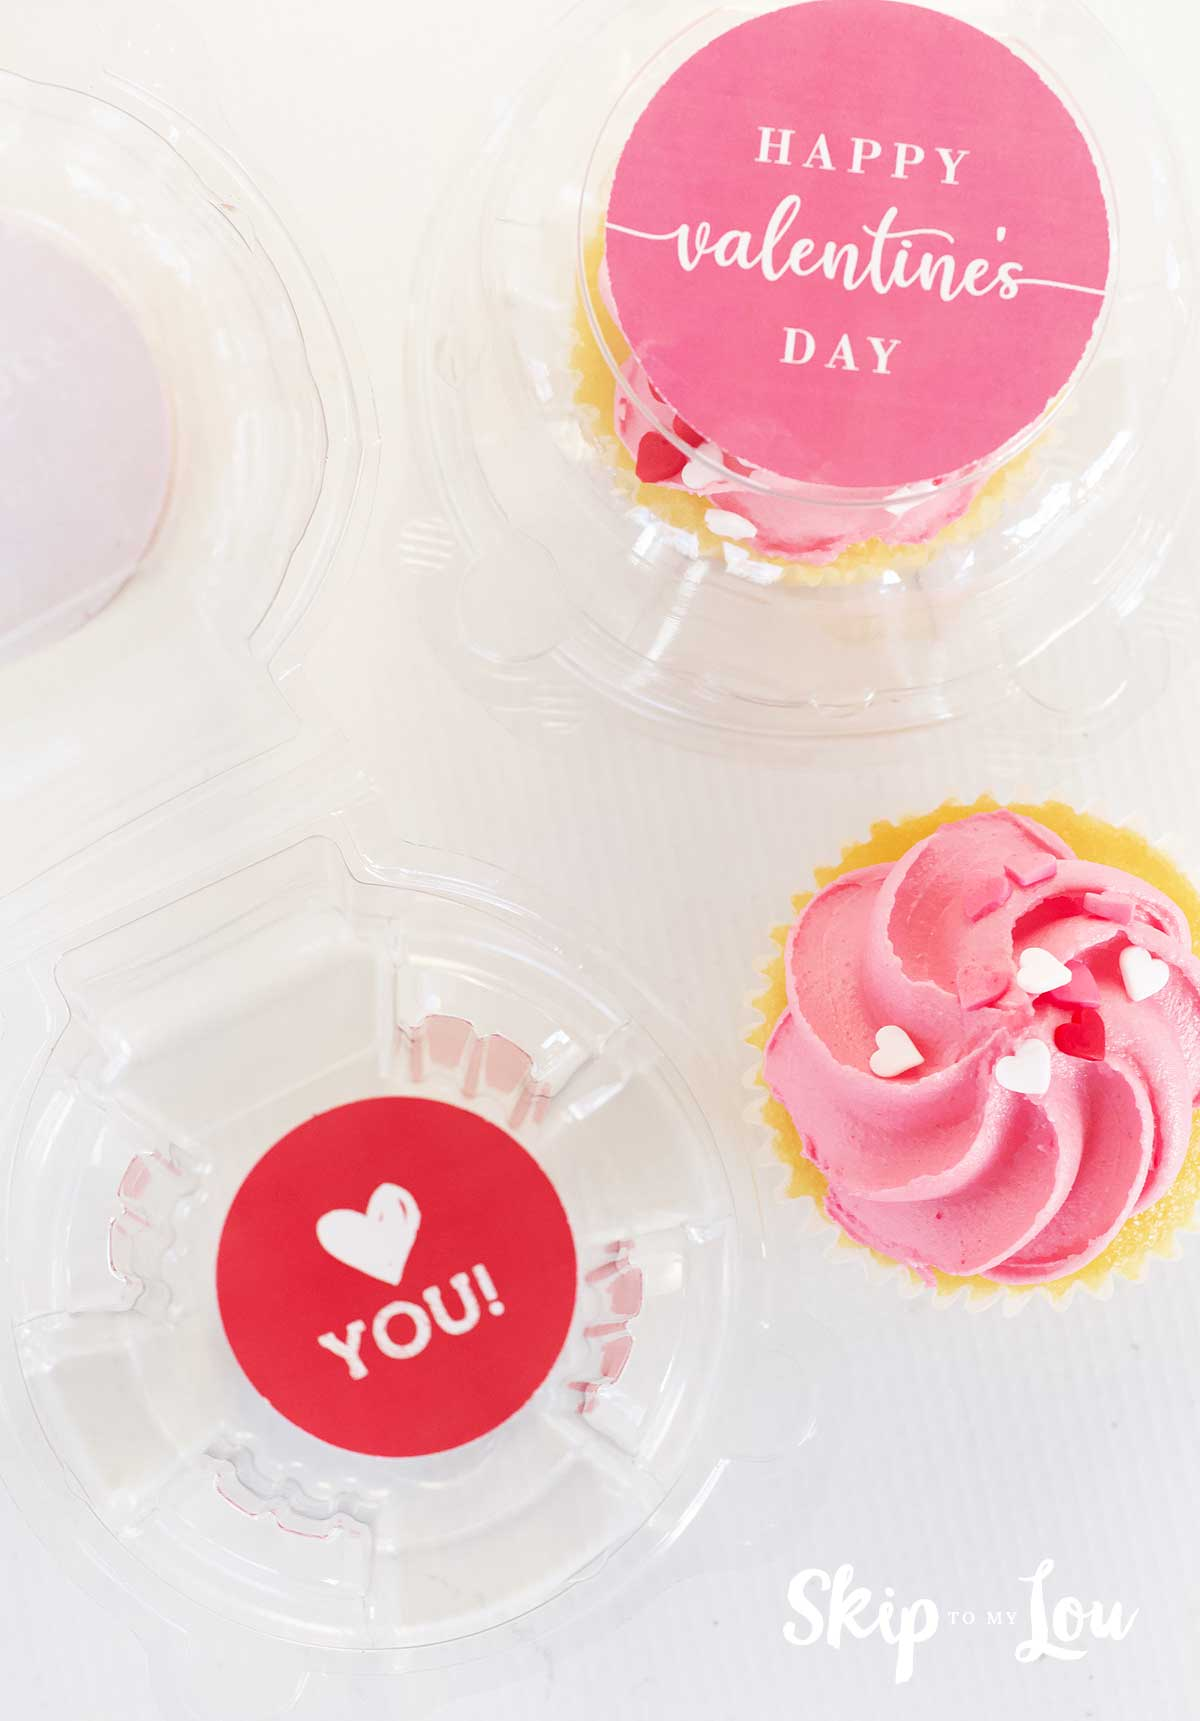 love you cupcake sticker in clear plastic container